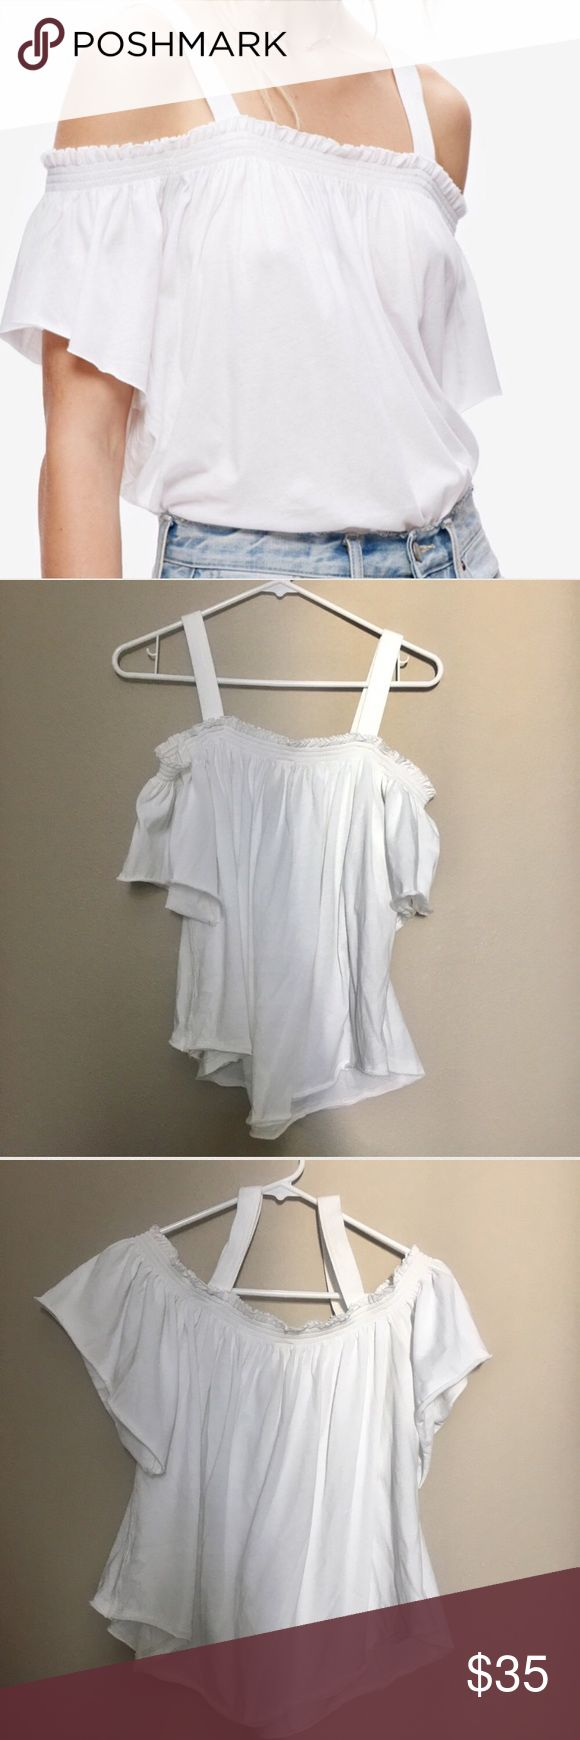 "Free People Cold Shoulder White Top Size Medium Free People Cold Shoulder White Top  •Like new! •Lightweight and comfortable! •Stretchy elastic band around chest and shoulders   •Approximate Measurements: Bust: 34.5"" Neckline to bottom: 18""  Ships SAME or NEXT DAY from a SMOKE-FREE environment! Free People Tops Blouses"